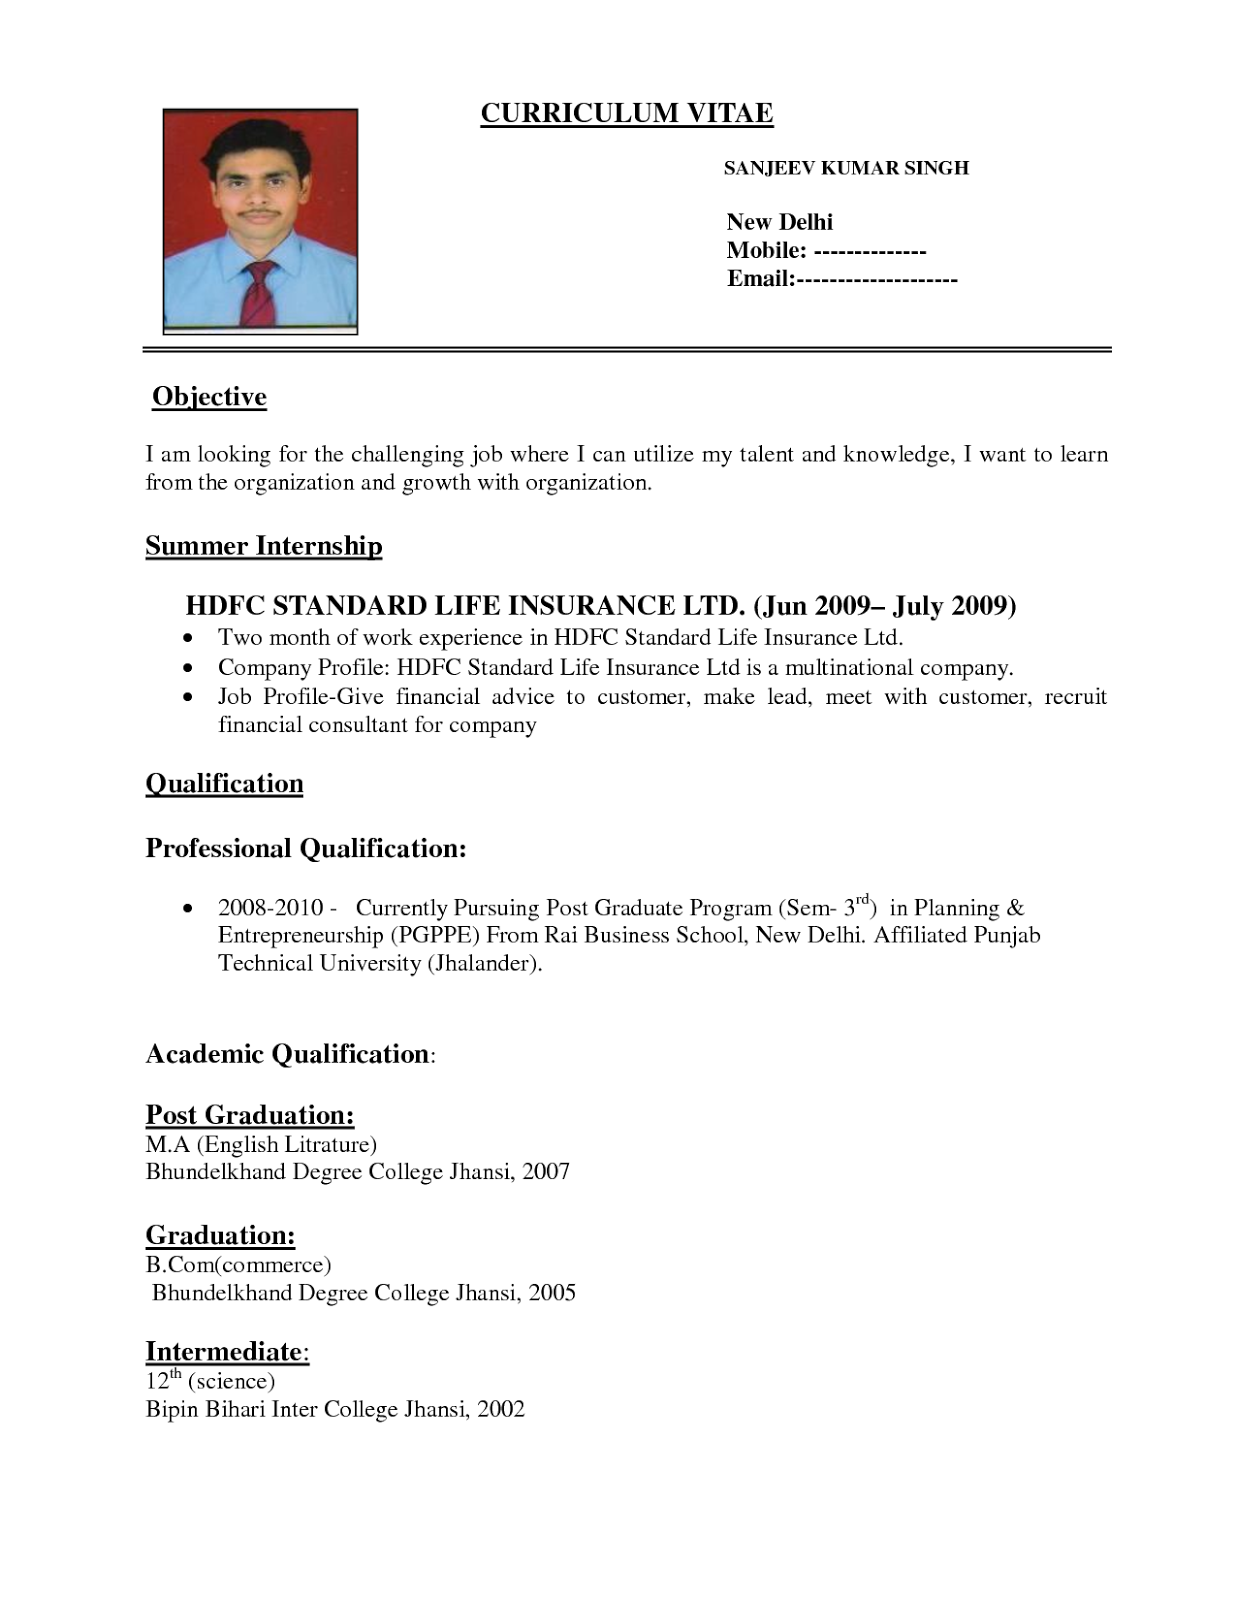 download resume format amp write the best focusing formal training and professional